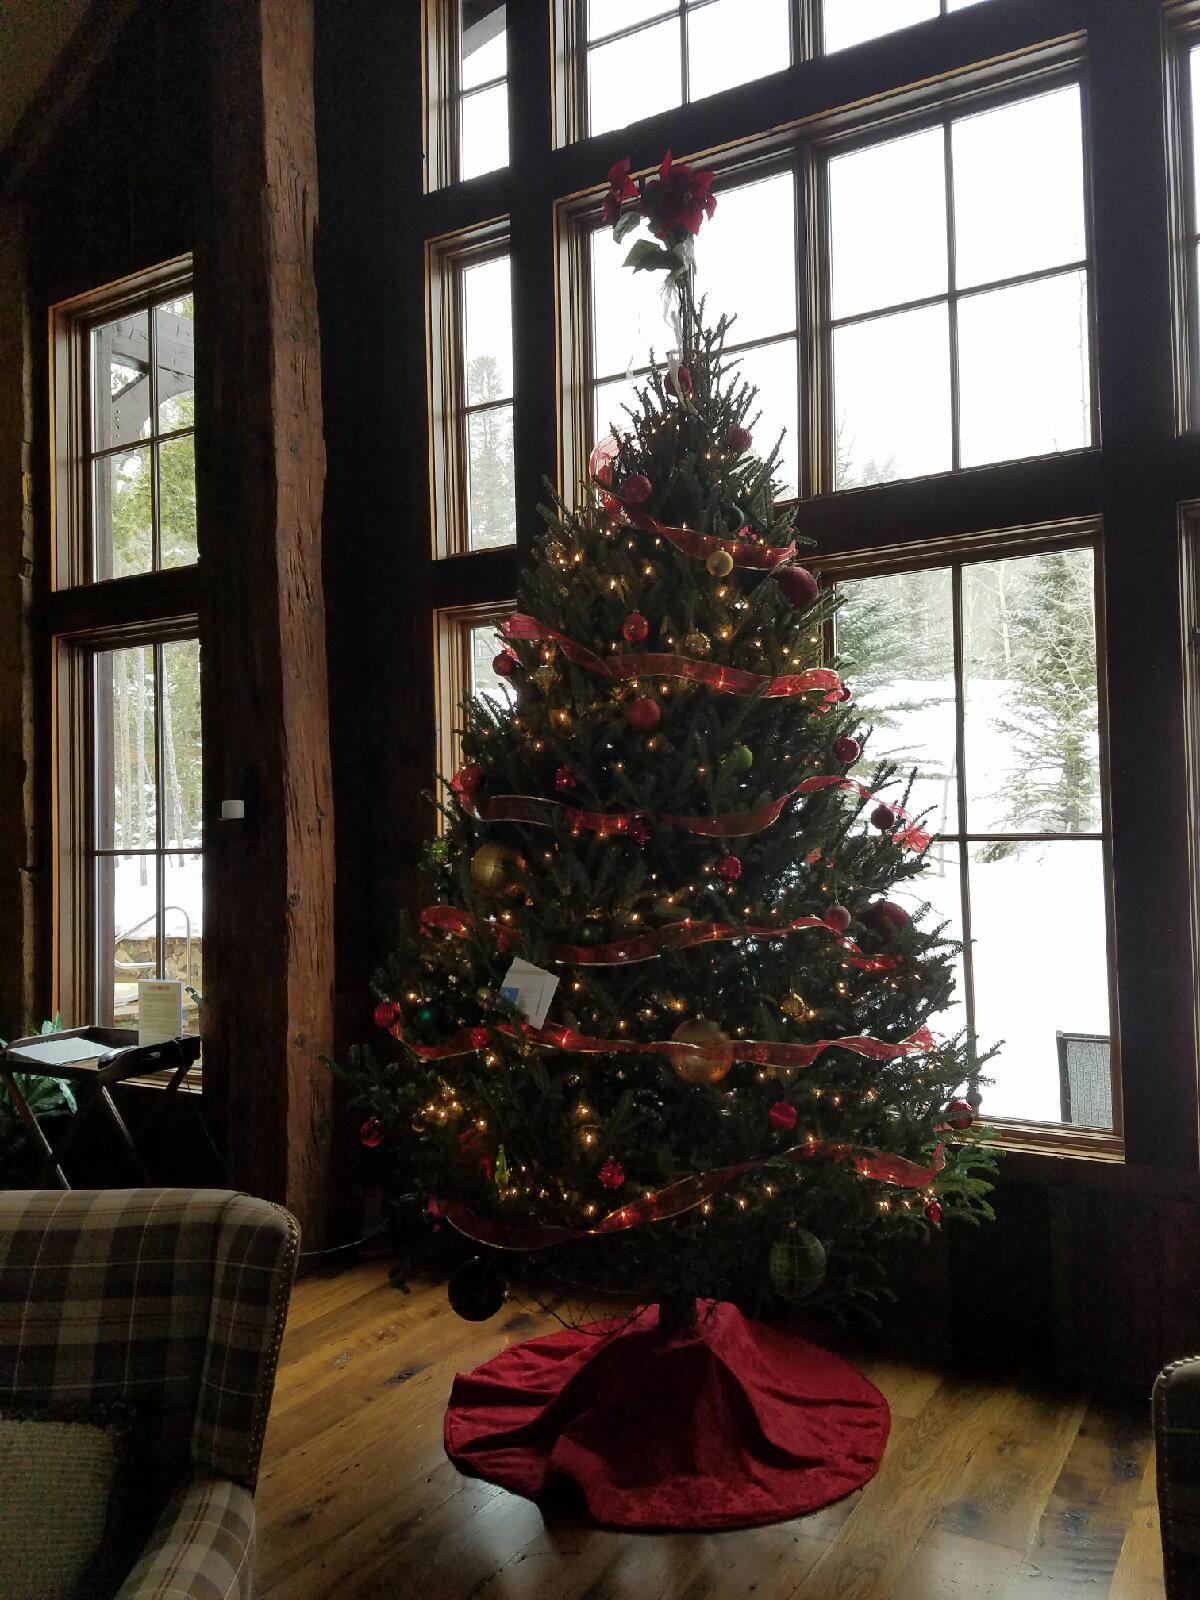 breckenridge decorated christmas tree rental - Rent A Decorated Christmas Tree